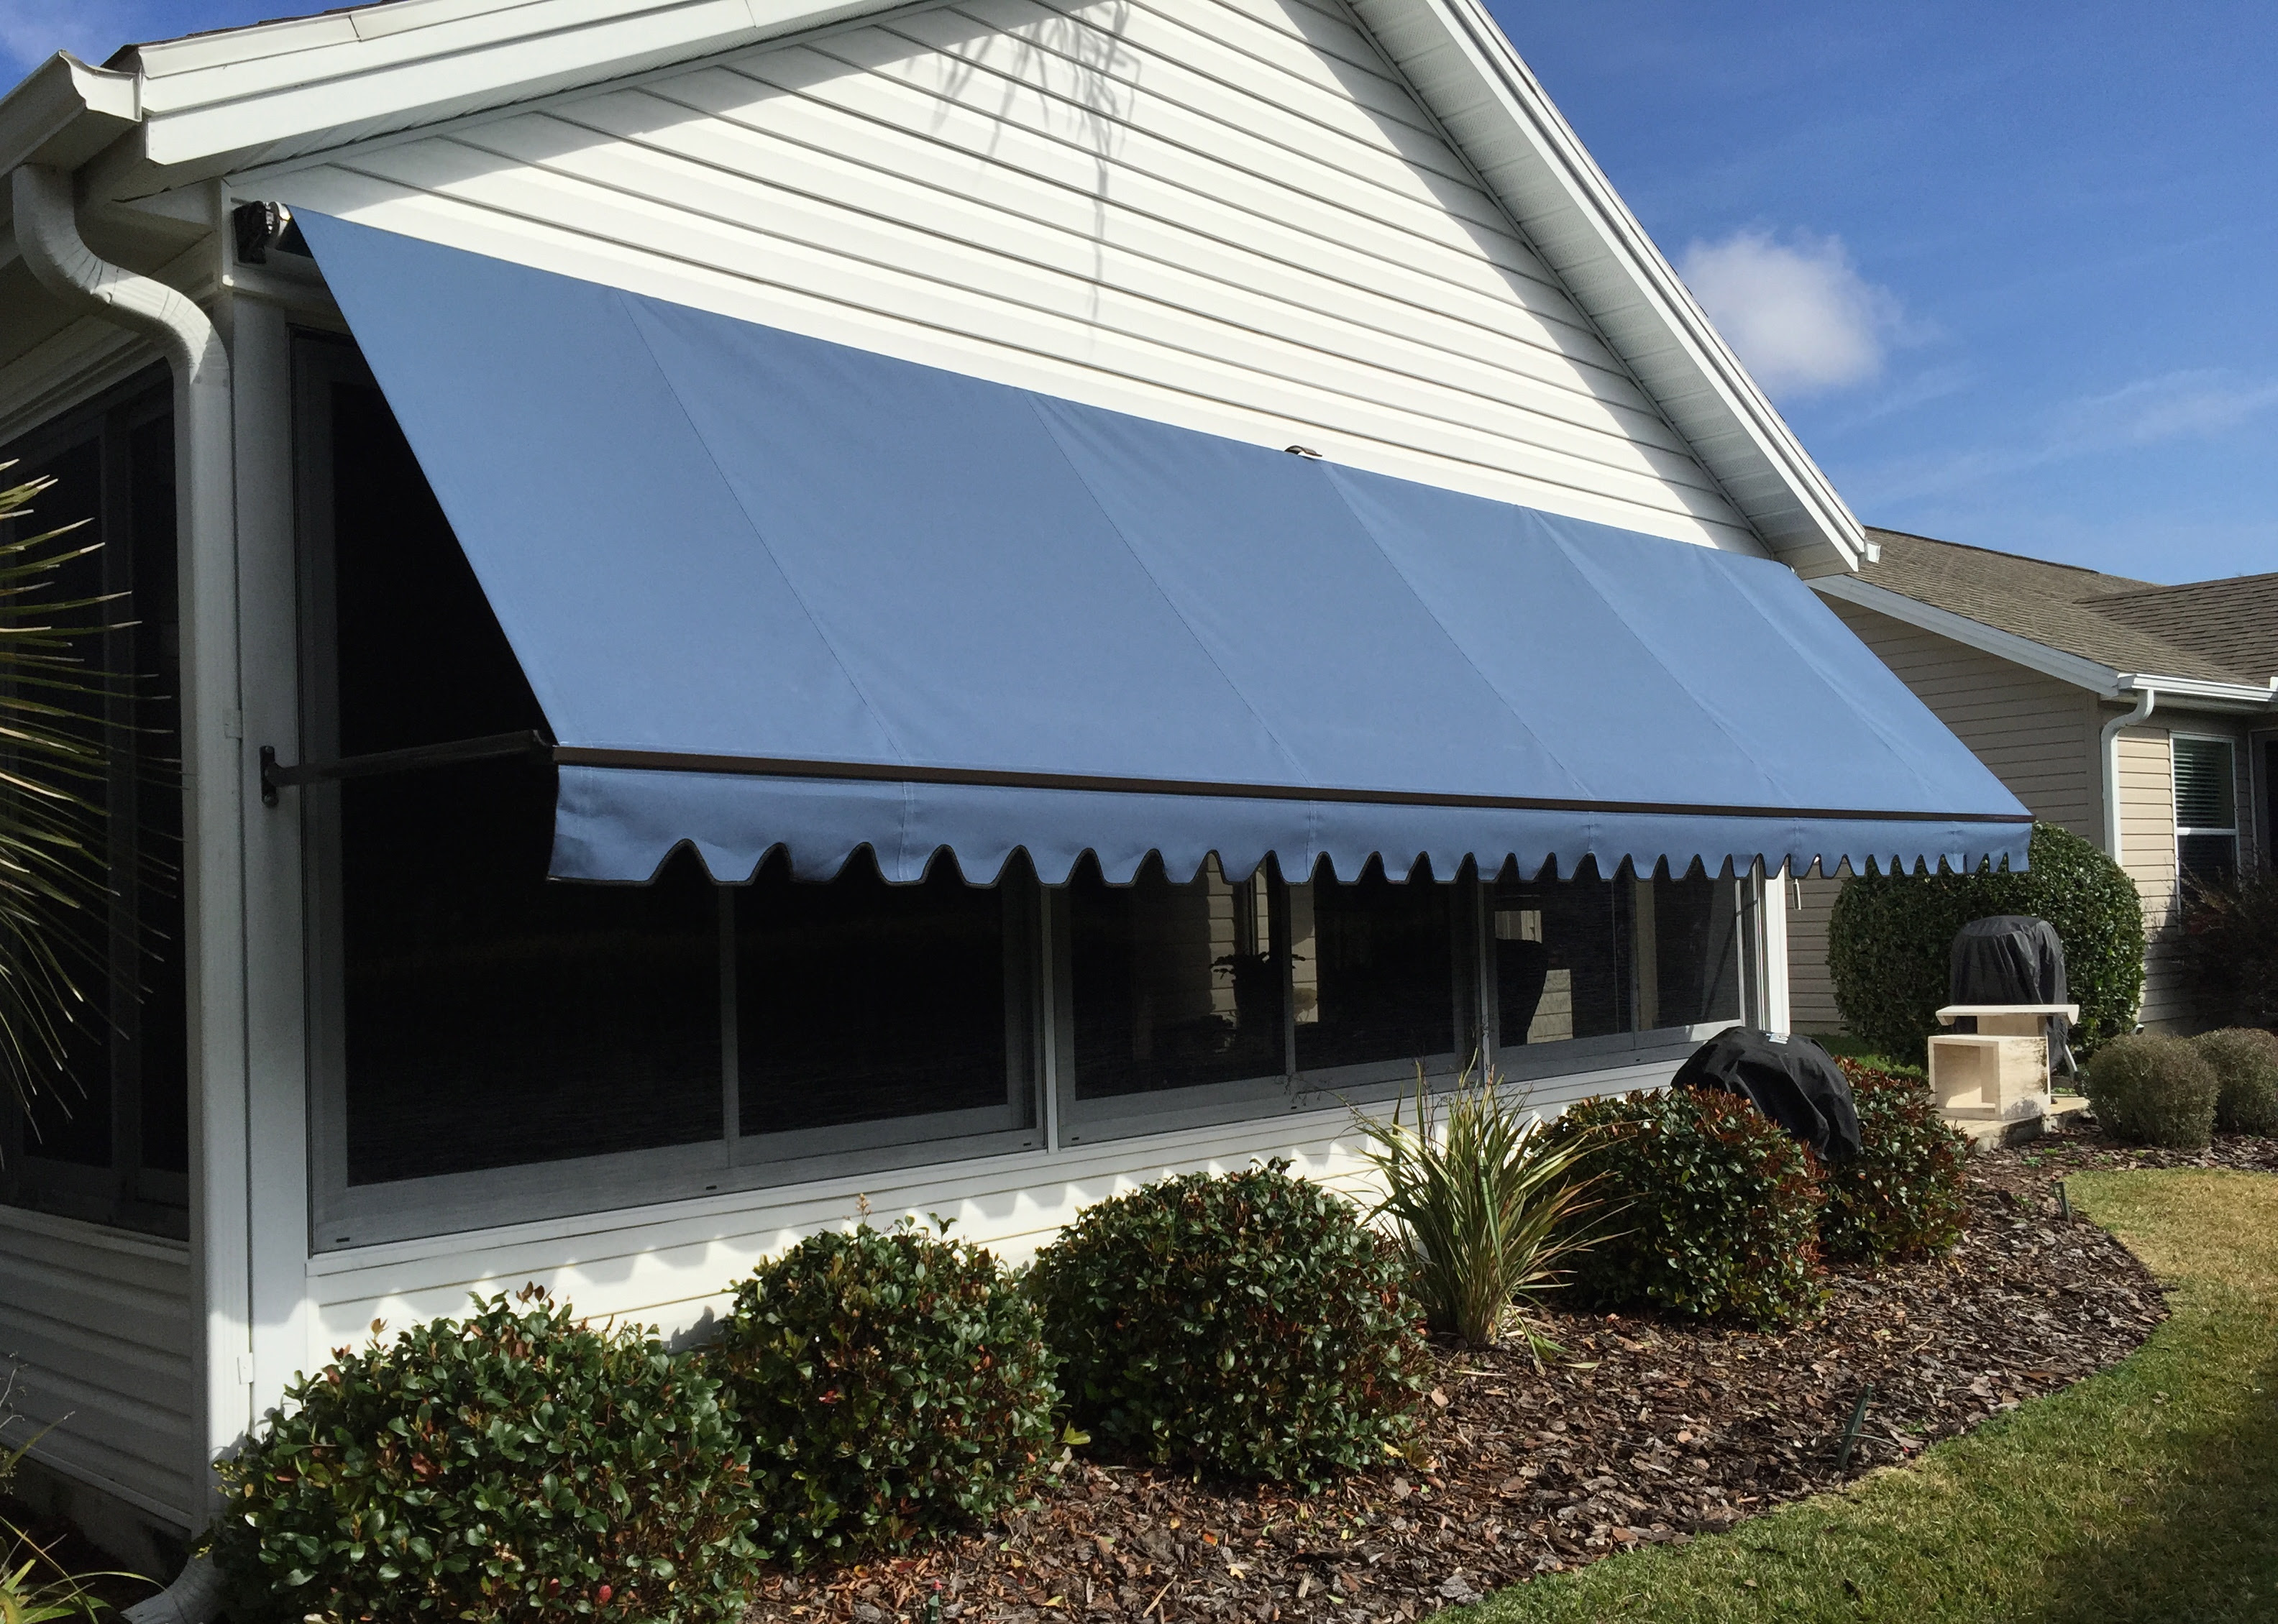 Canvas Awning Prices - acompleteimpossibility